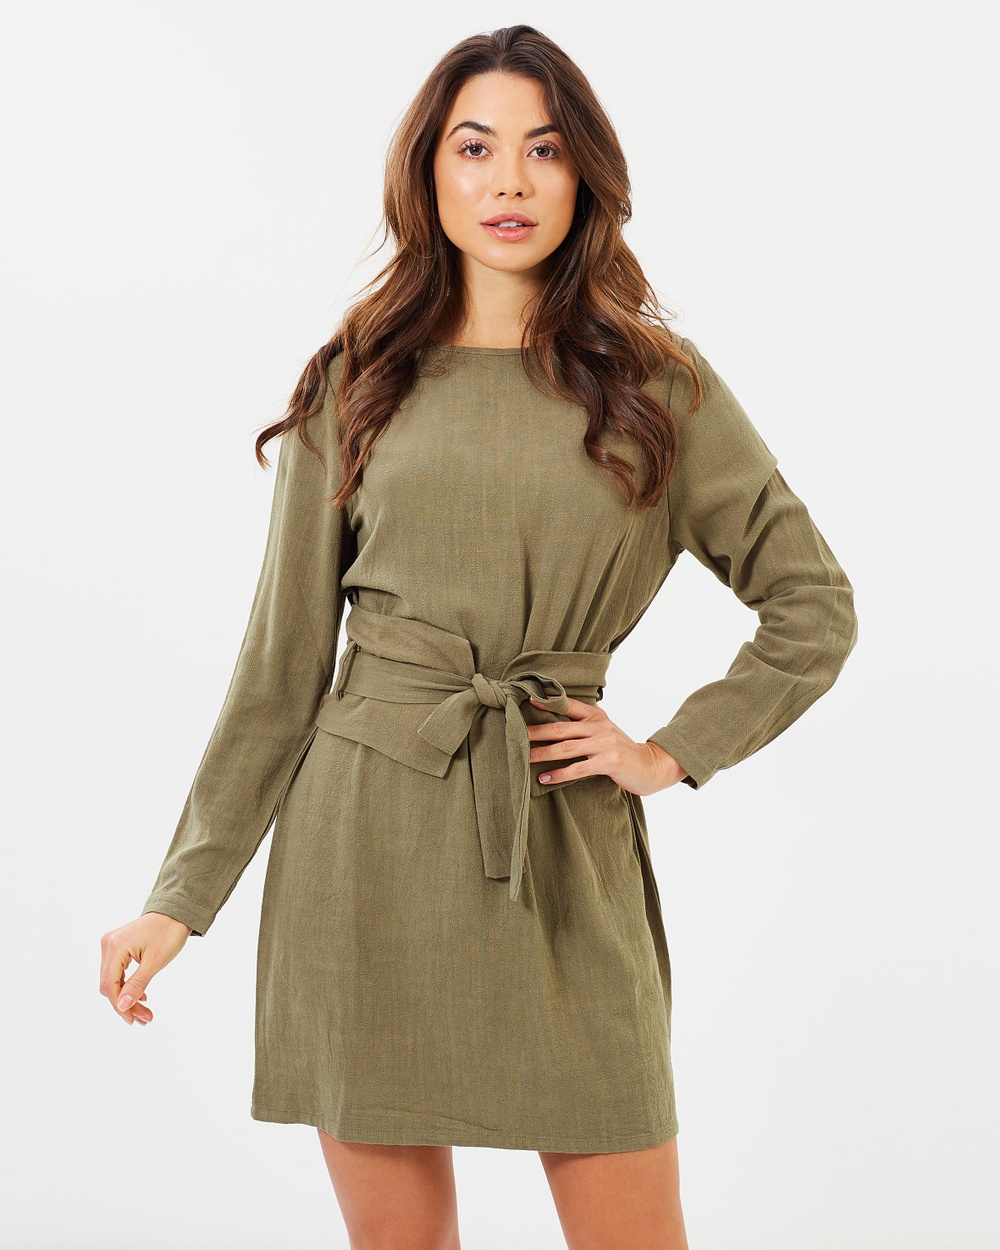 Atmos & Here ICONIC EXCLUSIVE Sierra Belted Dress Dresses Khaki ICONIC EXCLUSIVE Sierra Belted Dress